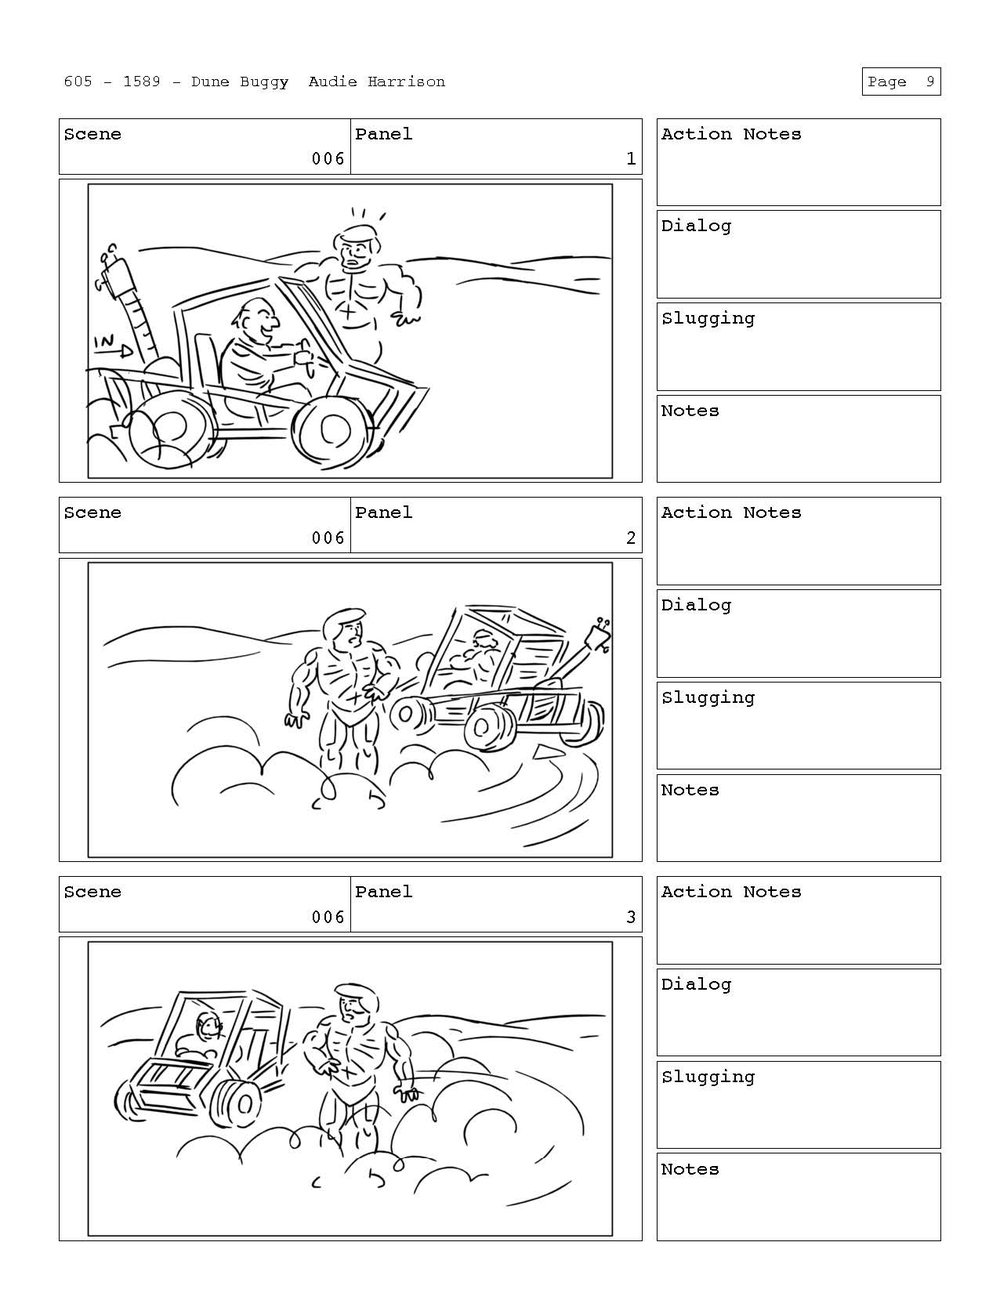 Dune_Buggy_Page_10.jpg